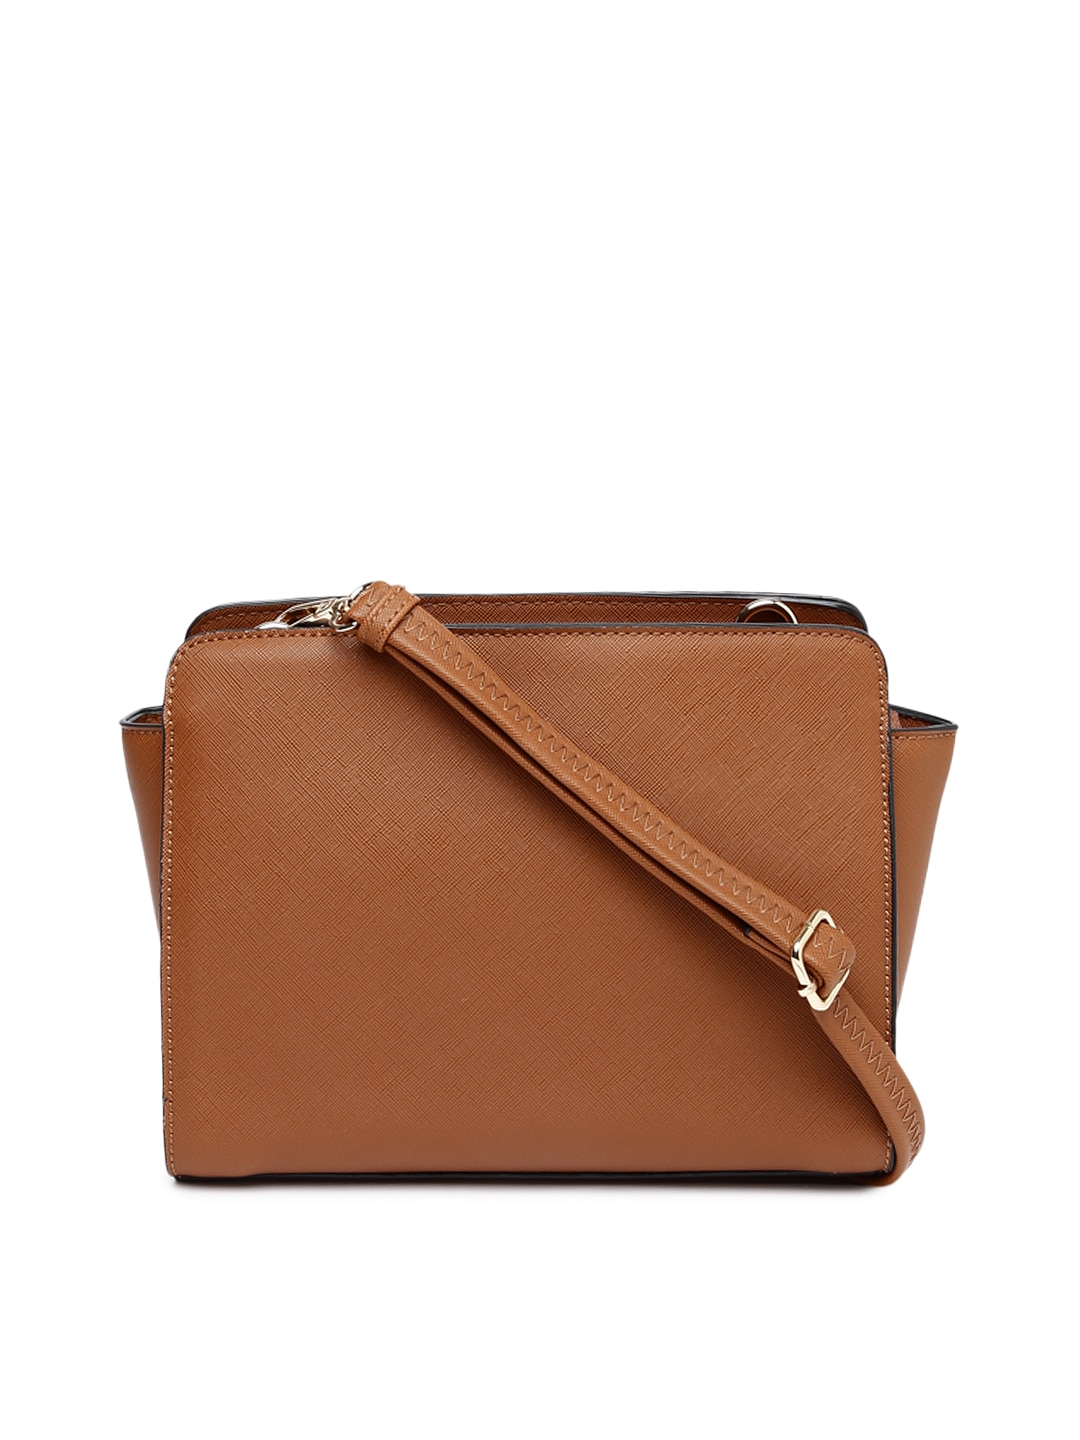 Bags for Women - Buy Trendy Women s Bags Online  abc9e553520af